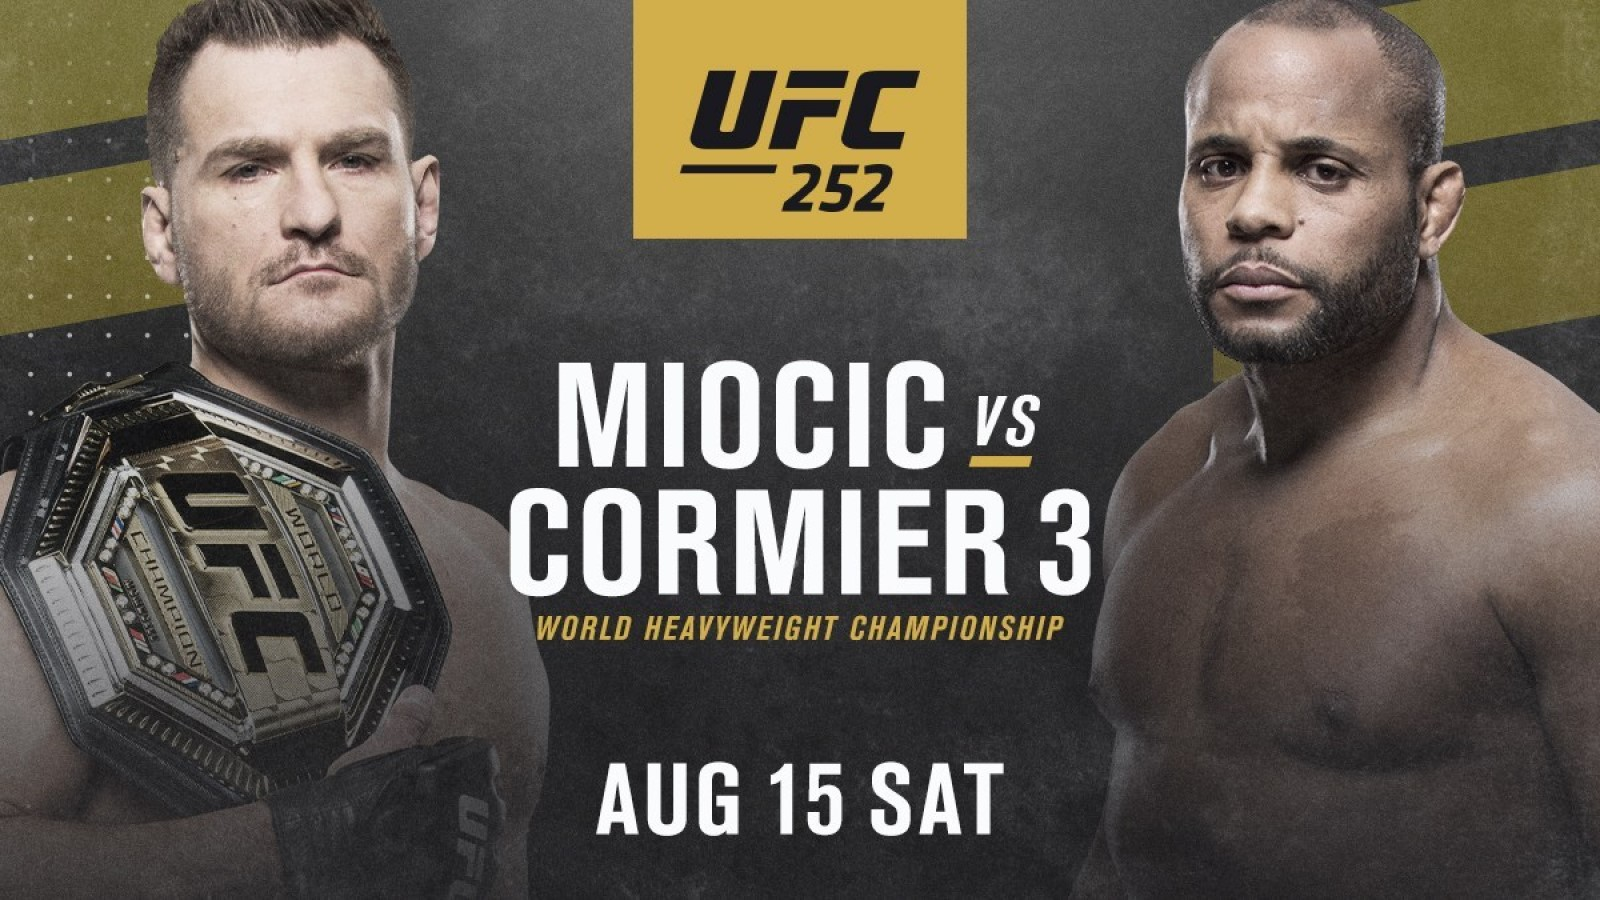 UFC announces events in Scotland, Netherlands and Poland